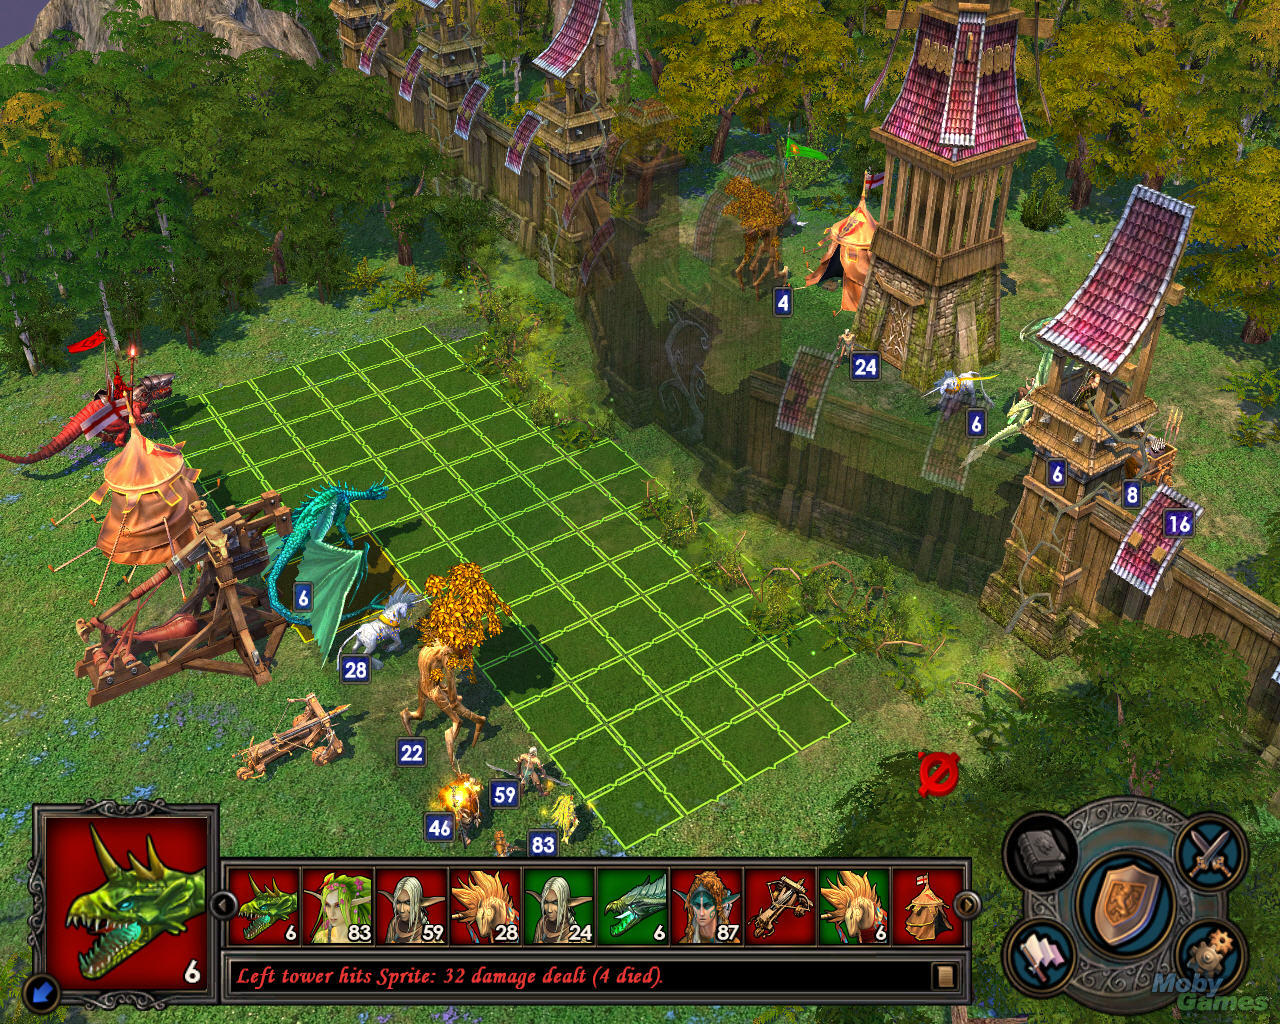 Heroes of might and magic 5 карты скачать